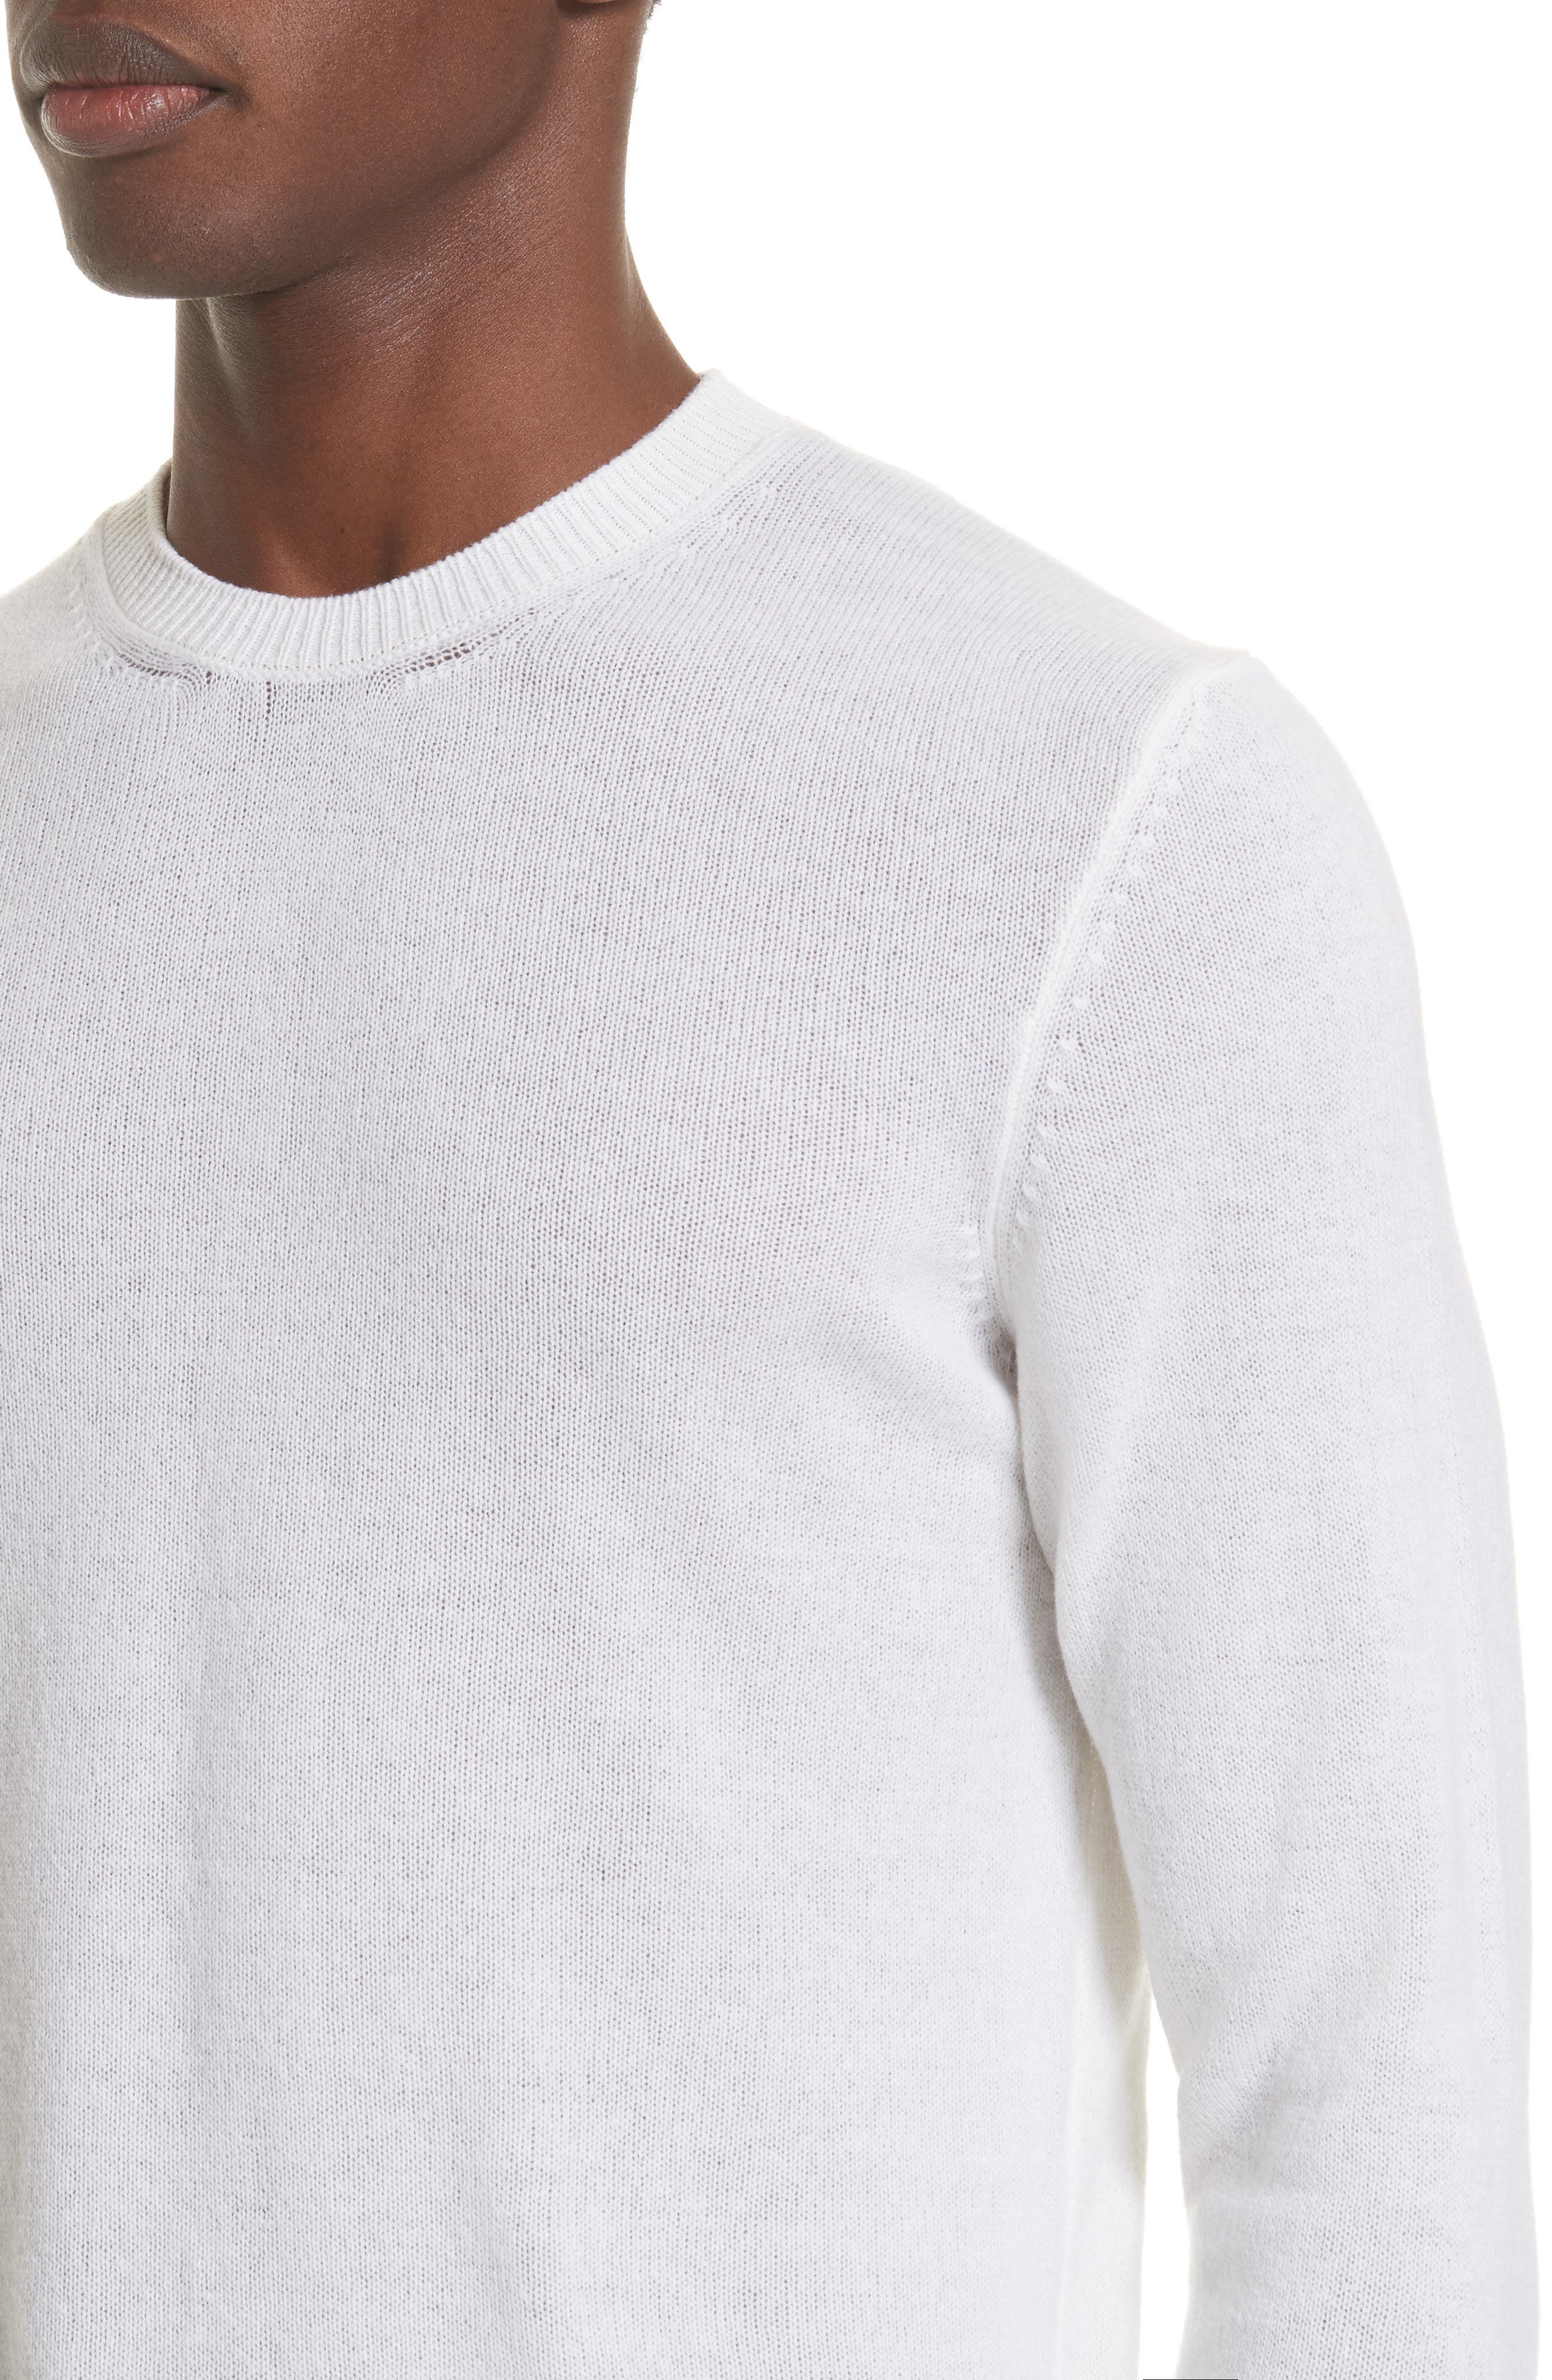 Cashmere Crewneck Sweater,                             Alternate thumbnail 4, color,                             100